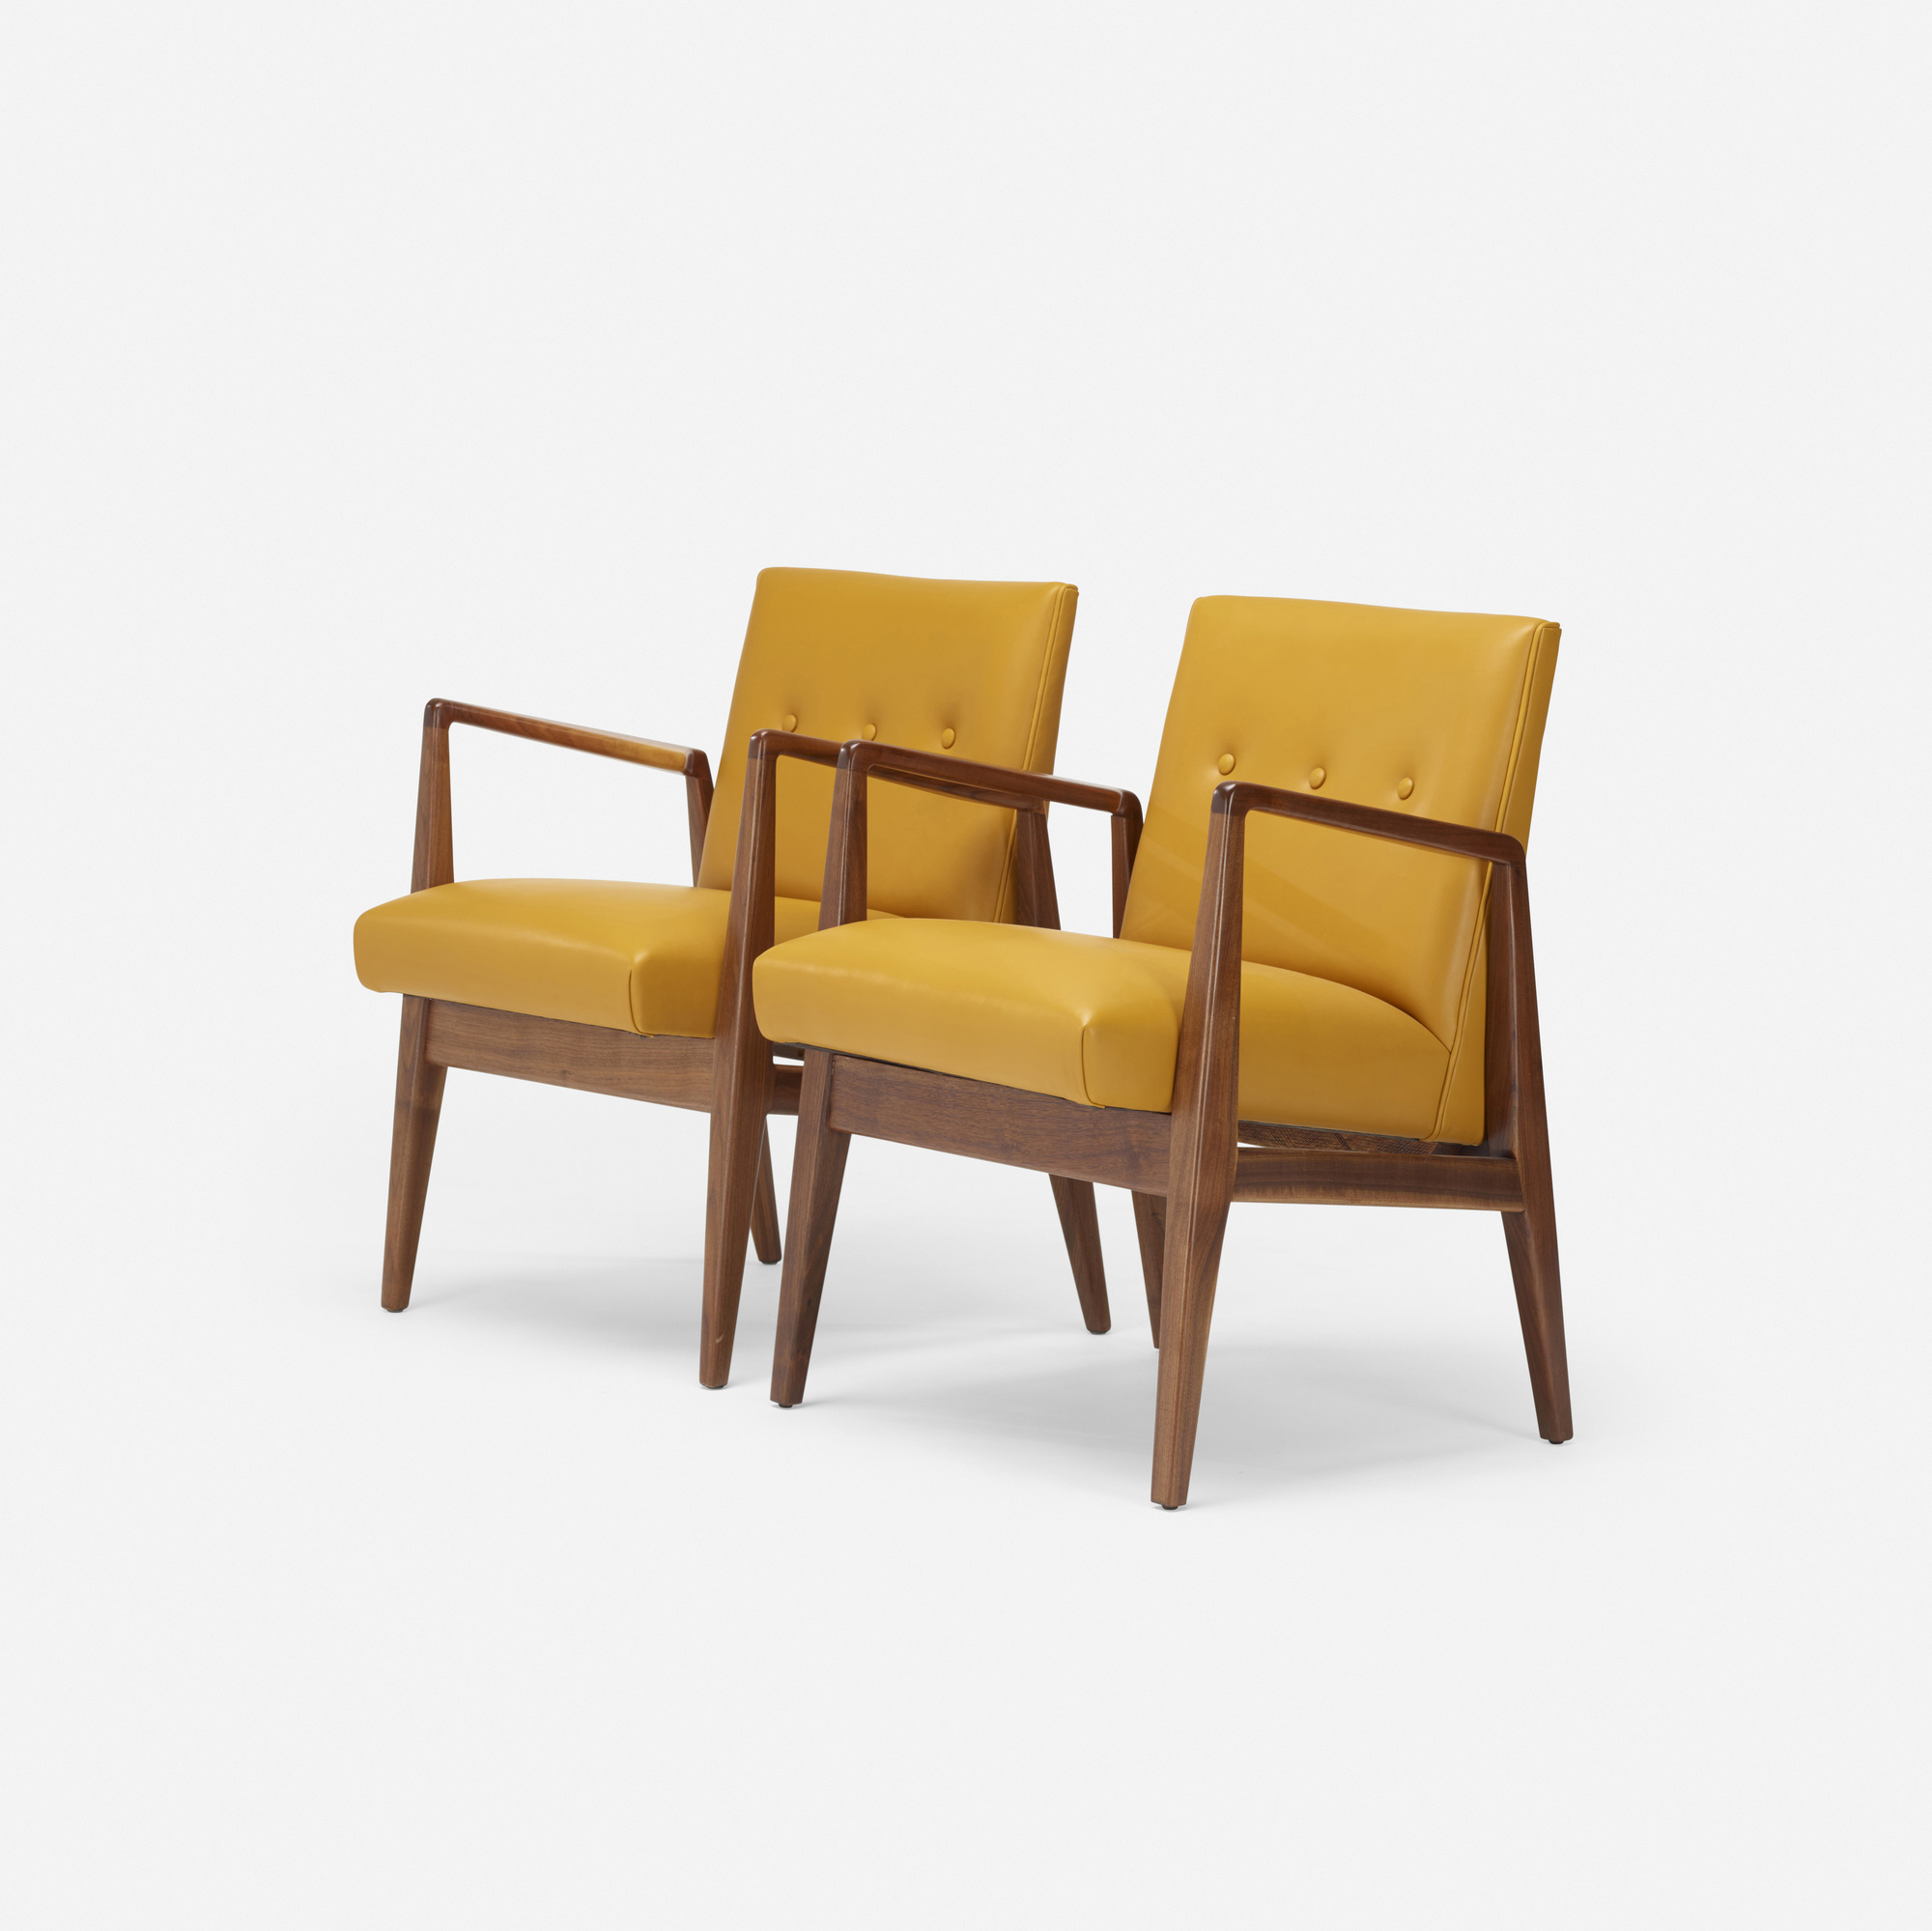 683: Jens Risom / lounge chairs, pair (2 of 2)